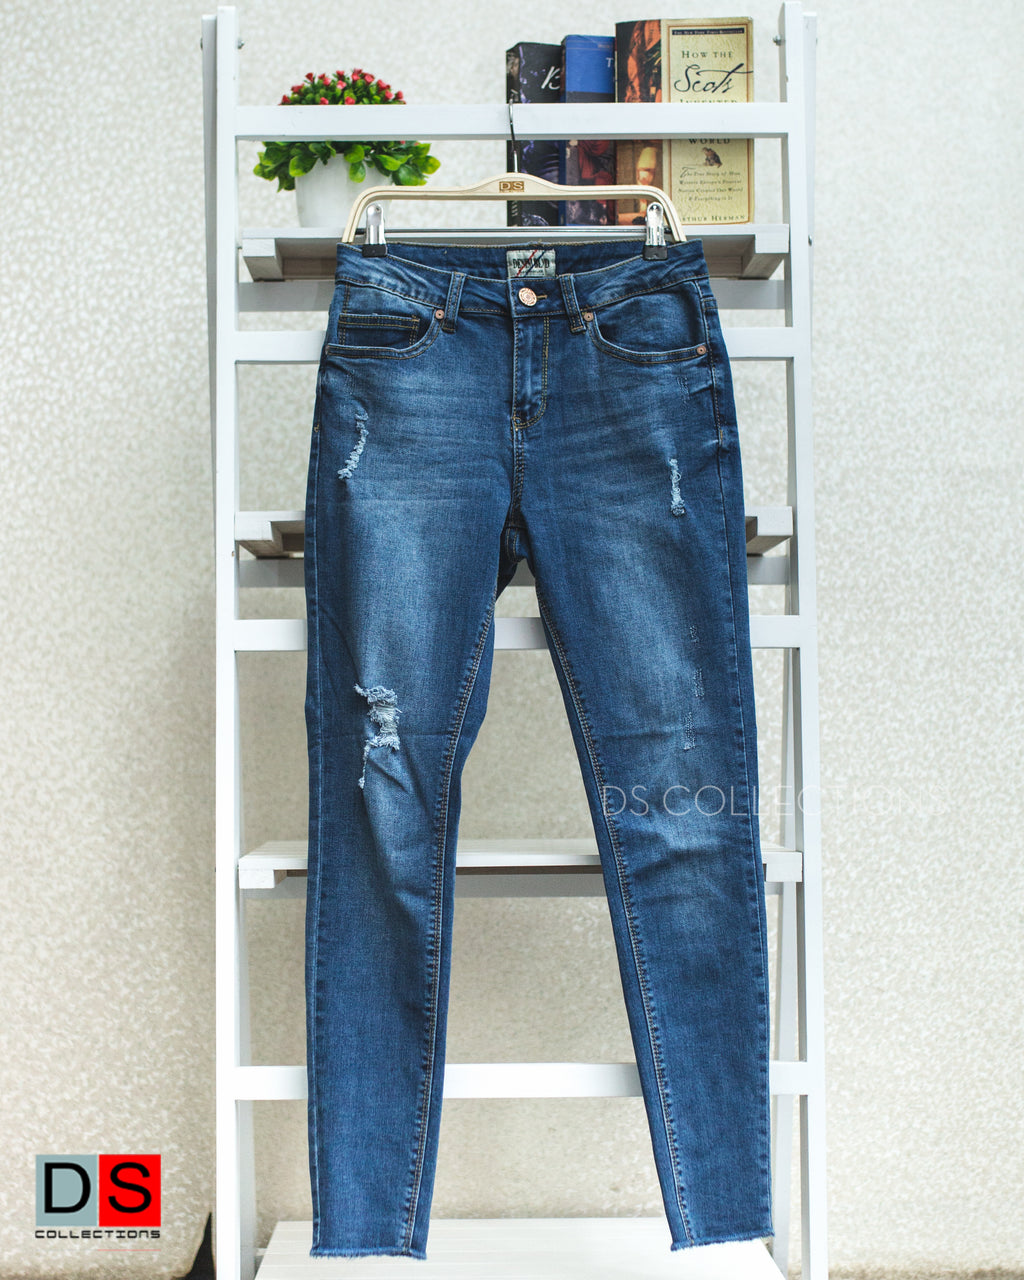 Women's Pant - Ripped Denim Jeans  | DS Collections Nepal